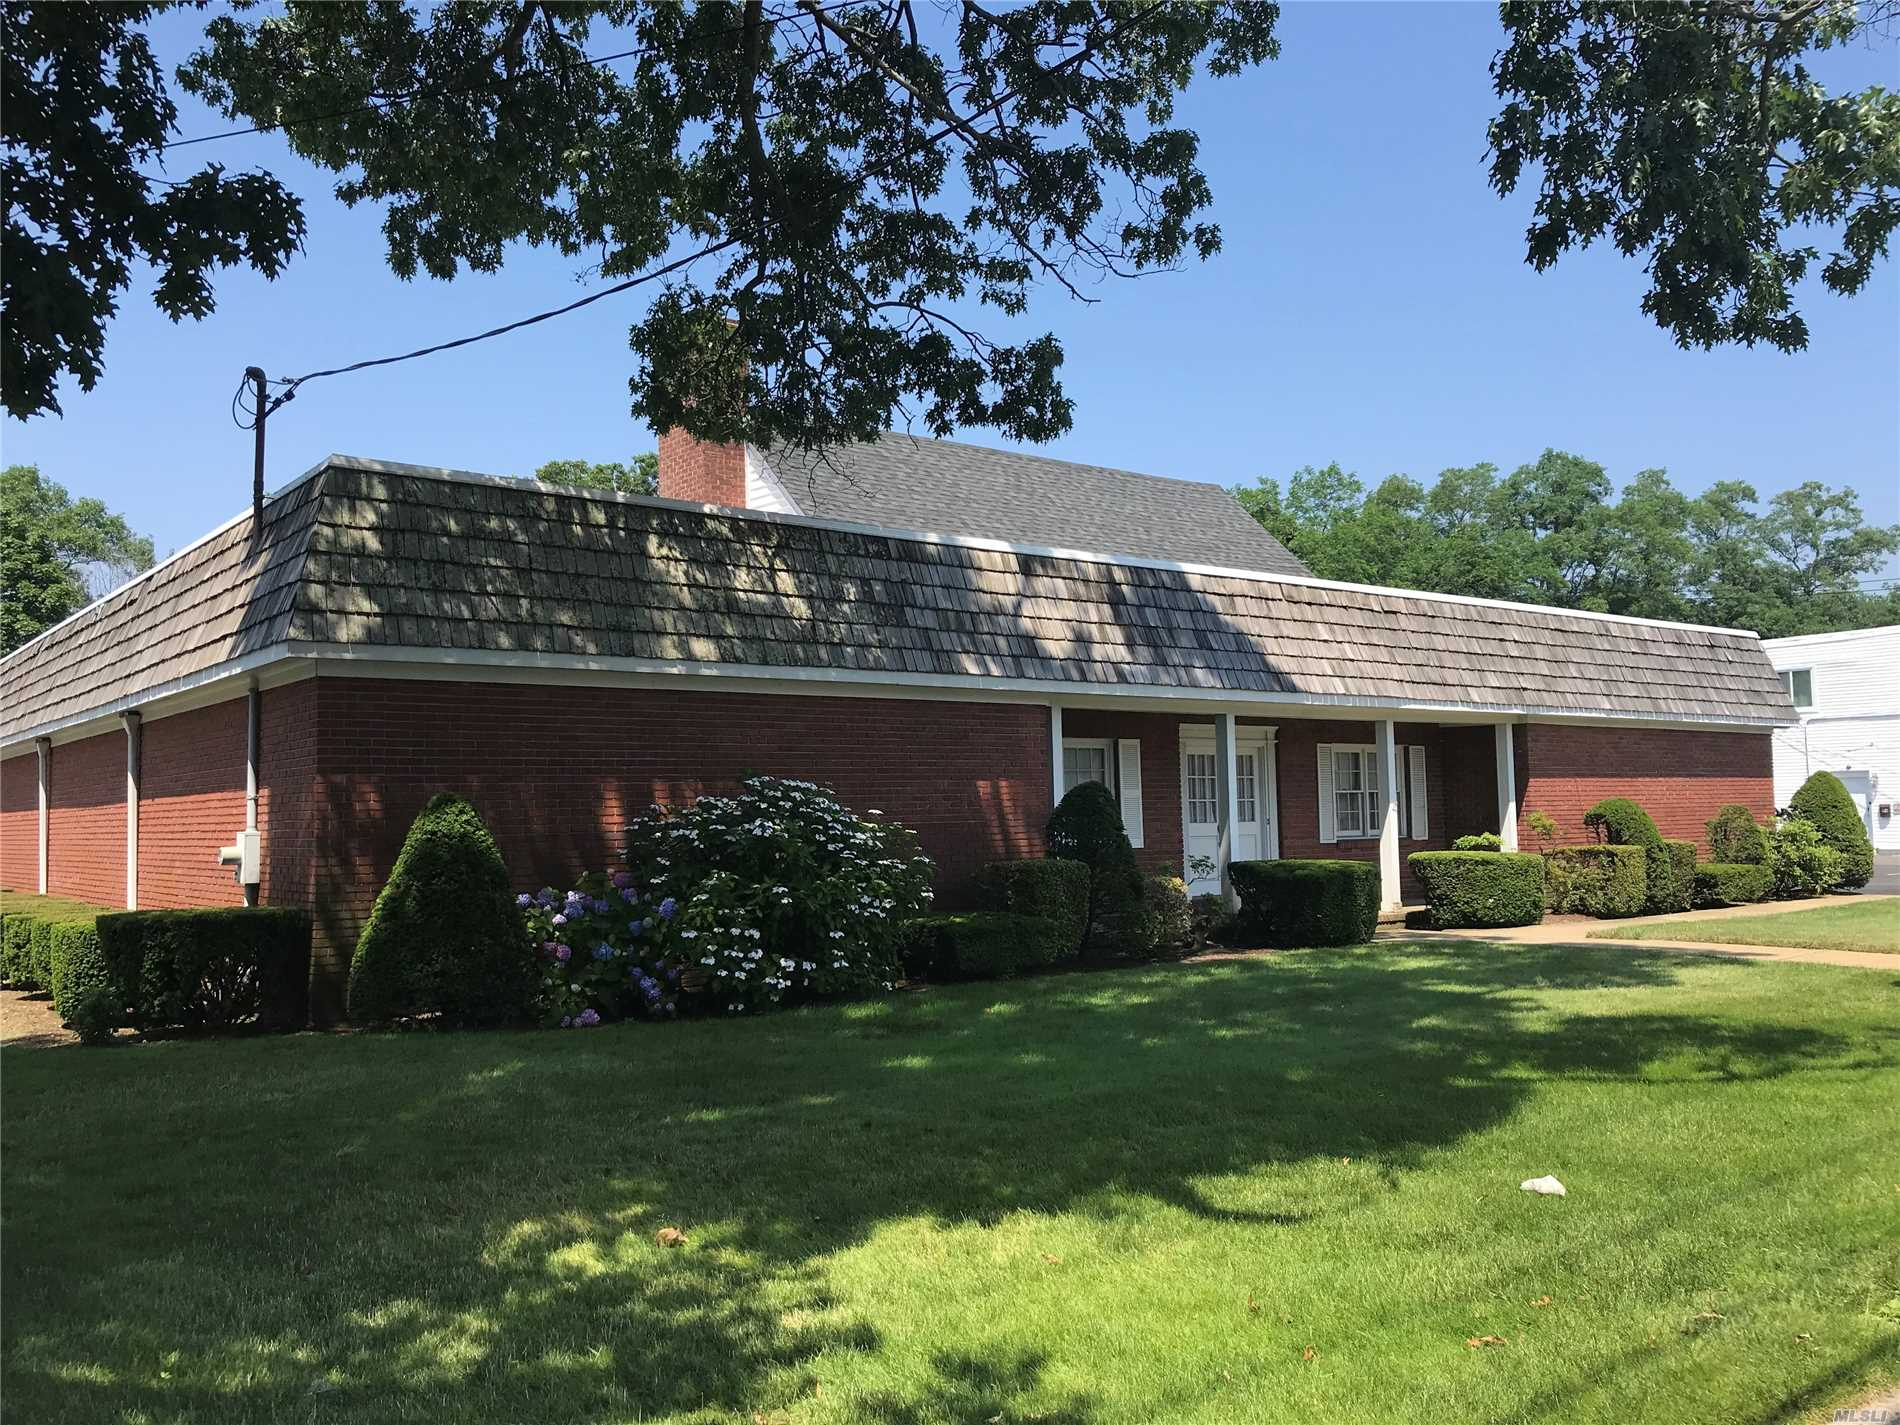 Photo of home for sale at 98 Carleton Ave, Islip Terrace NY